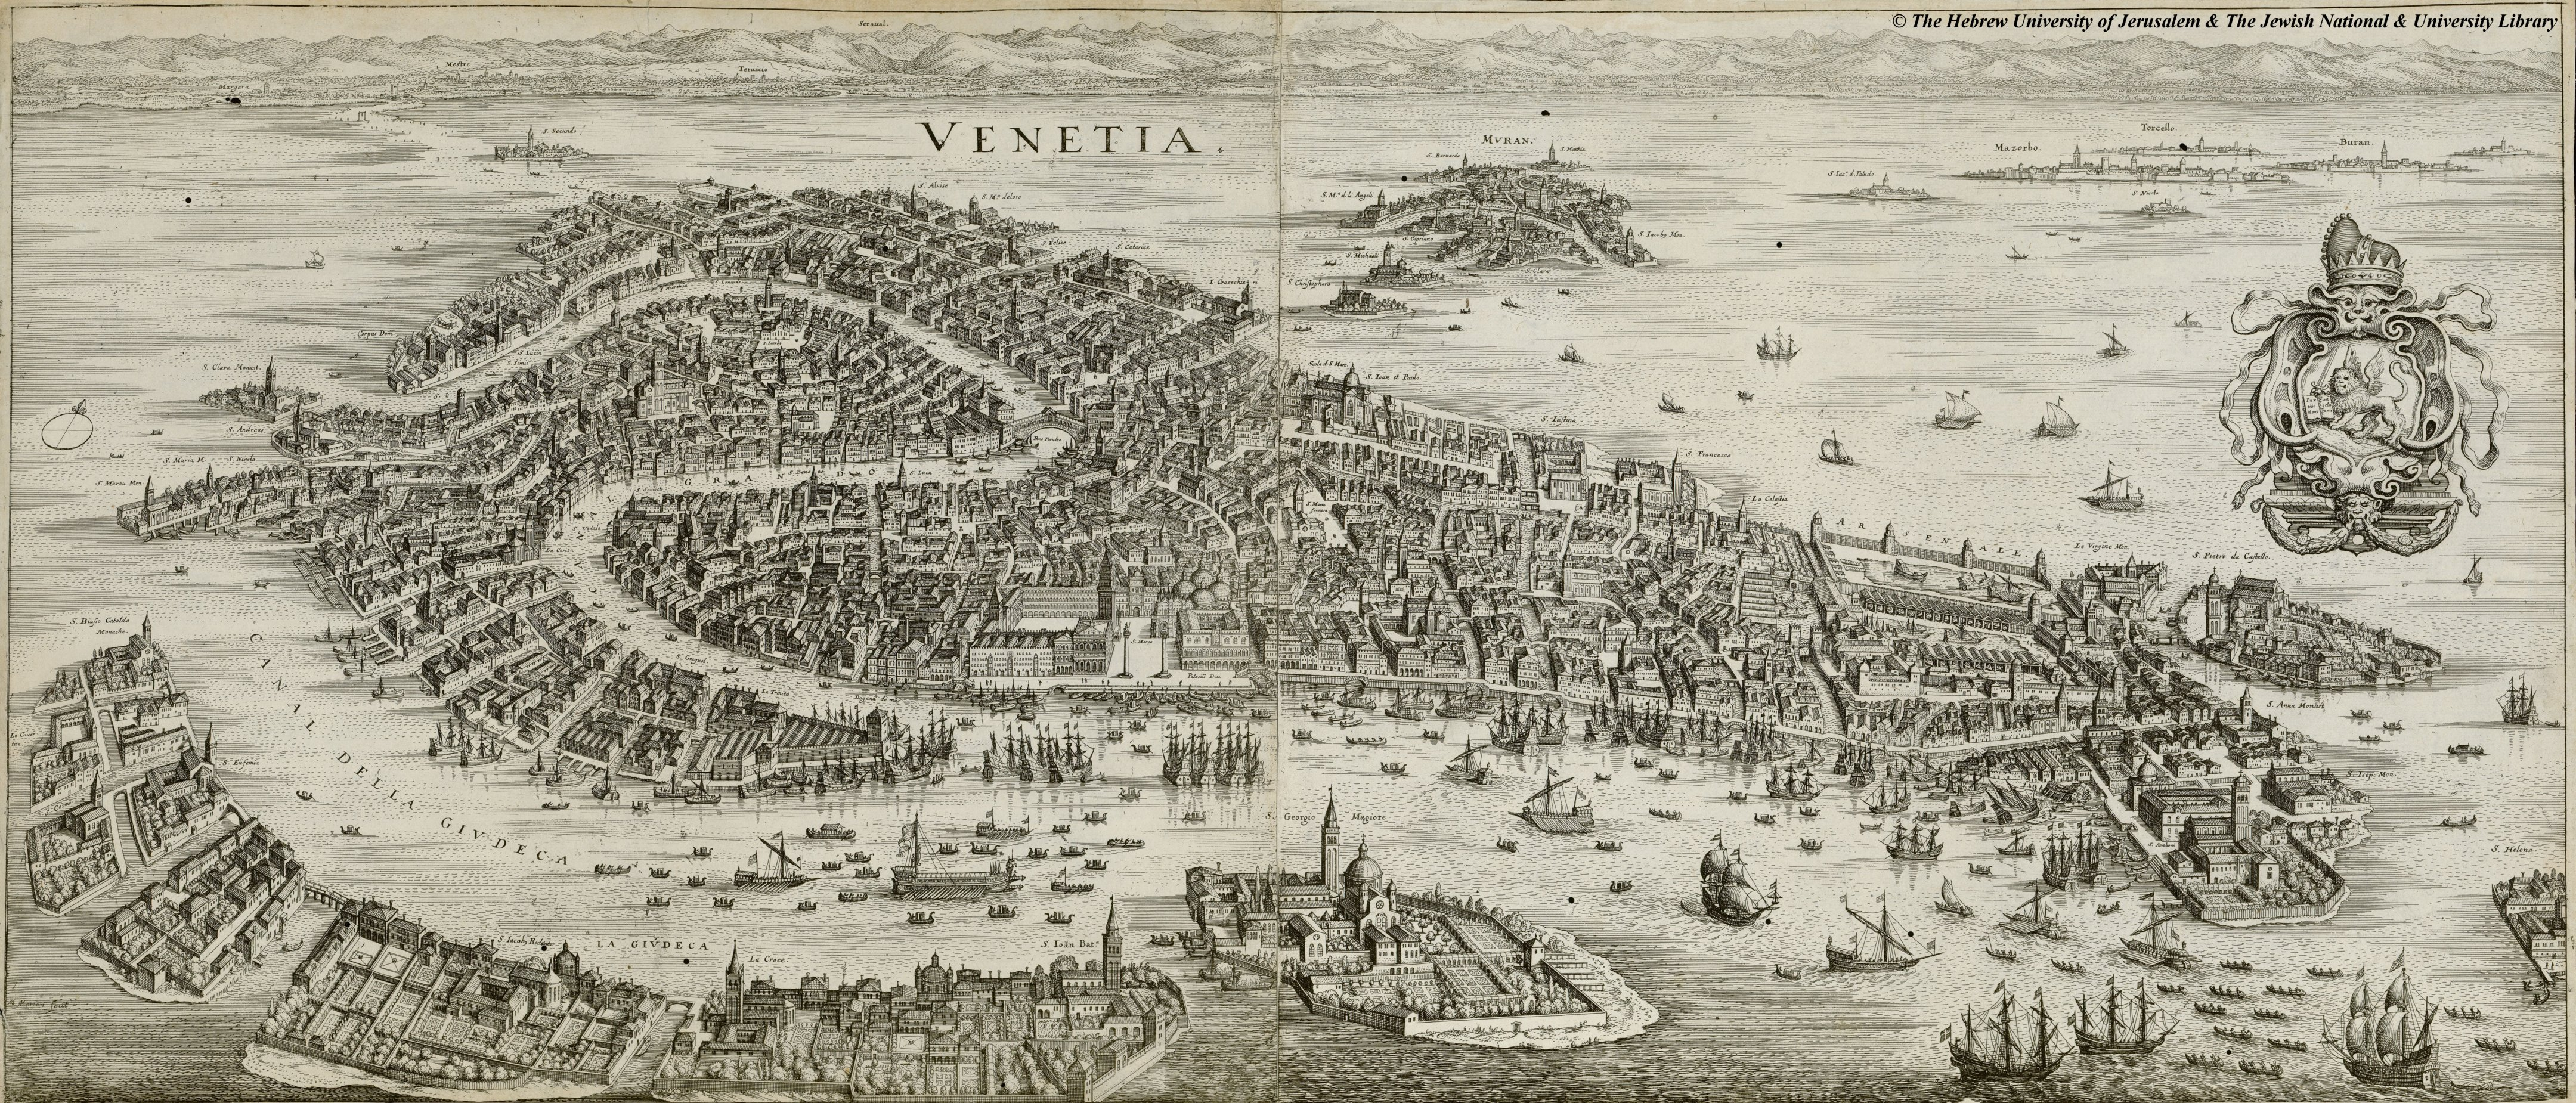 FileVenezia Cjpg Wikimedia Commons - Venice map image